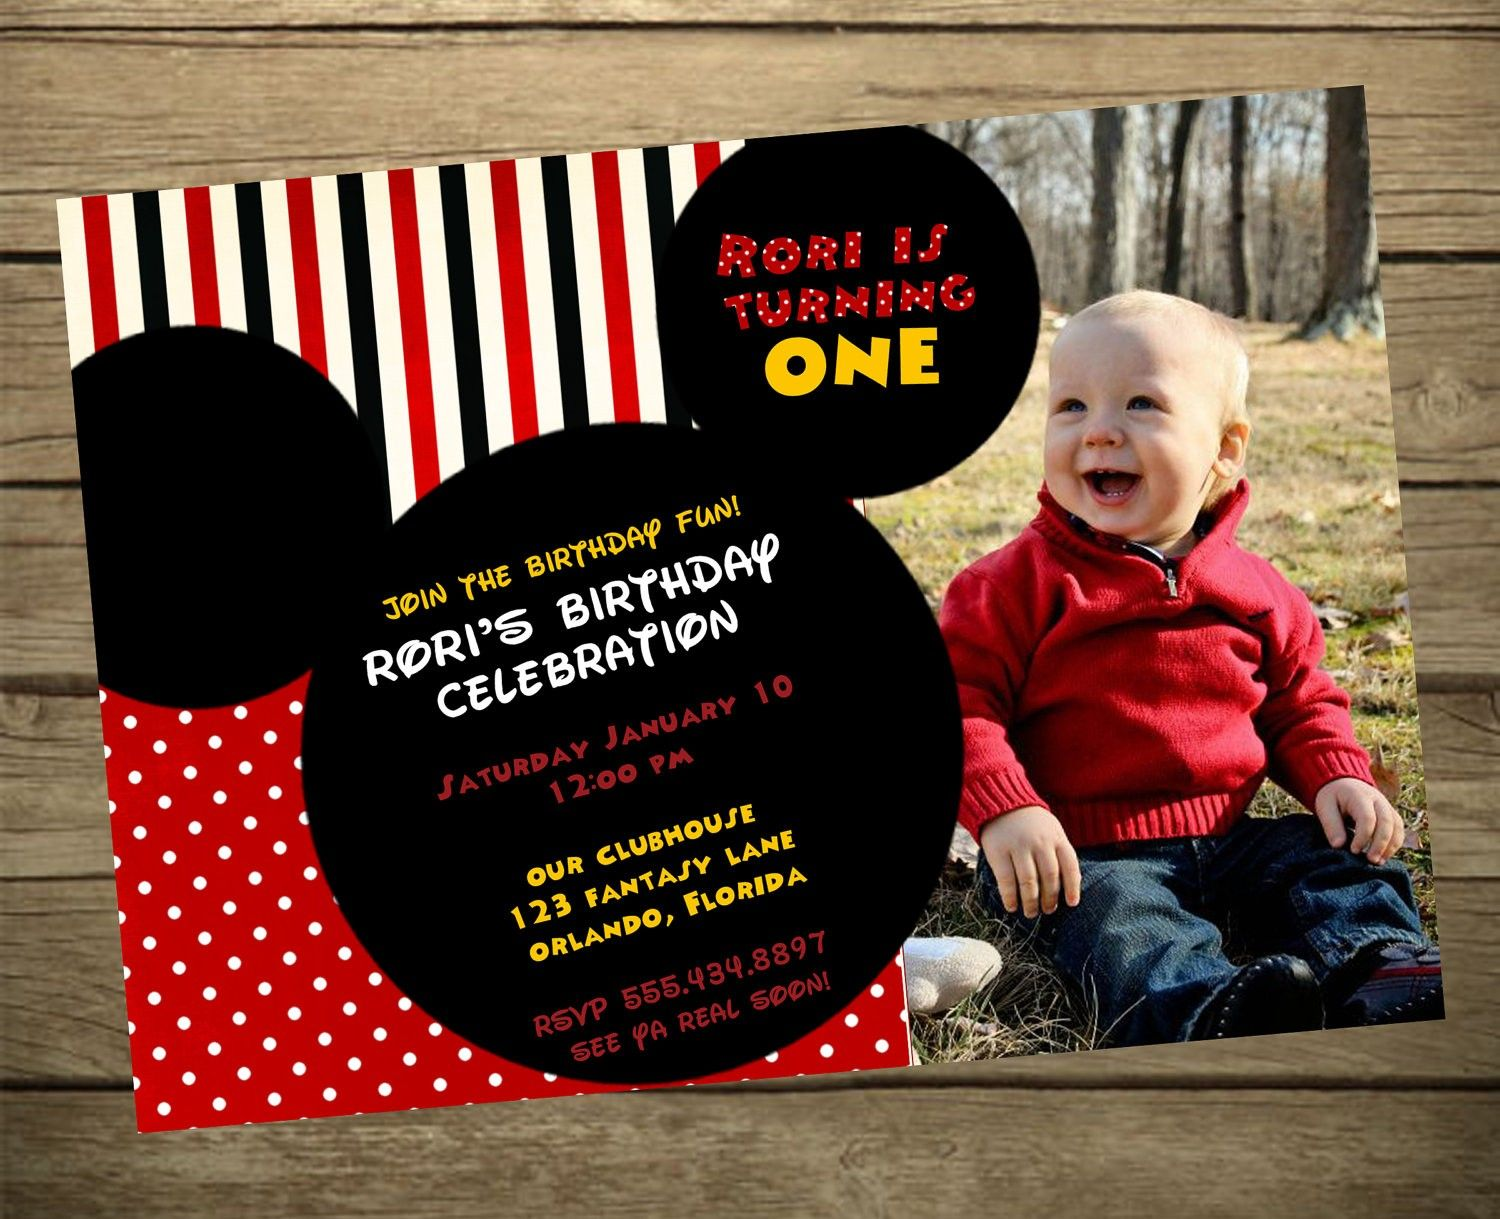 Invitation Wording For Mickey Mouse Party. Mickey Mouse Clubhouse Birthday Party Invitation Wording